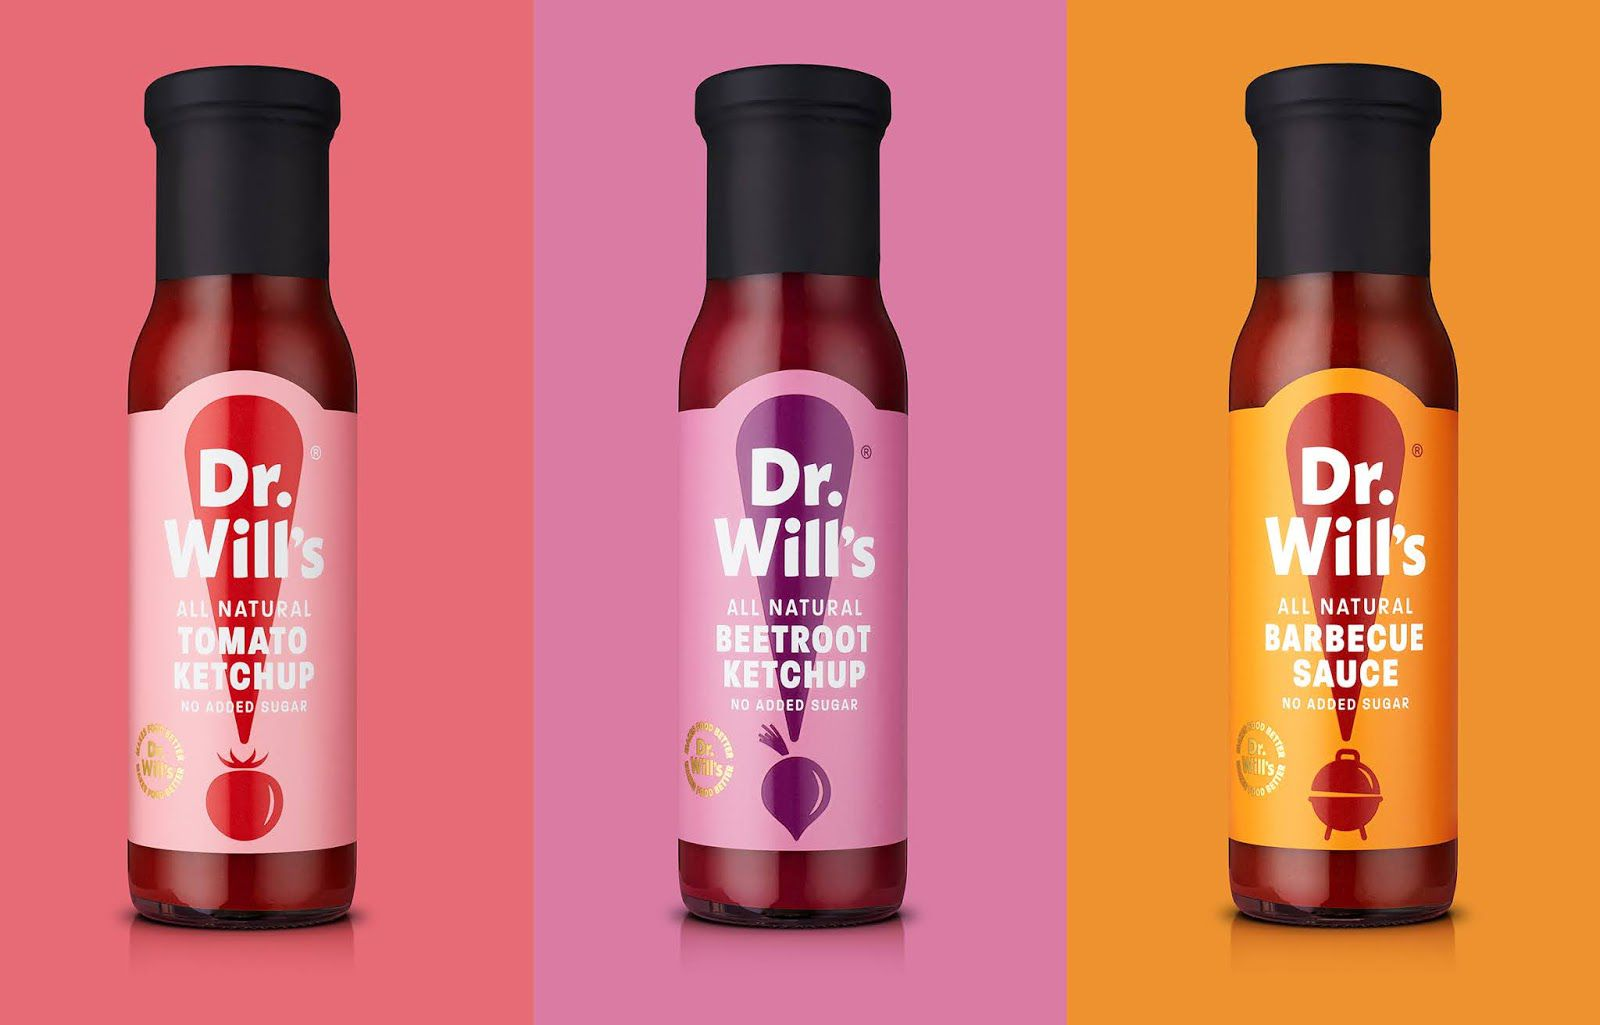 Dr Will's (sauces) I Design : B&B studio, Royaume-Uni (juin 2020)